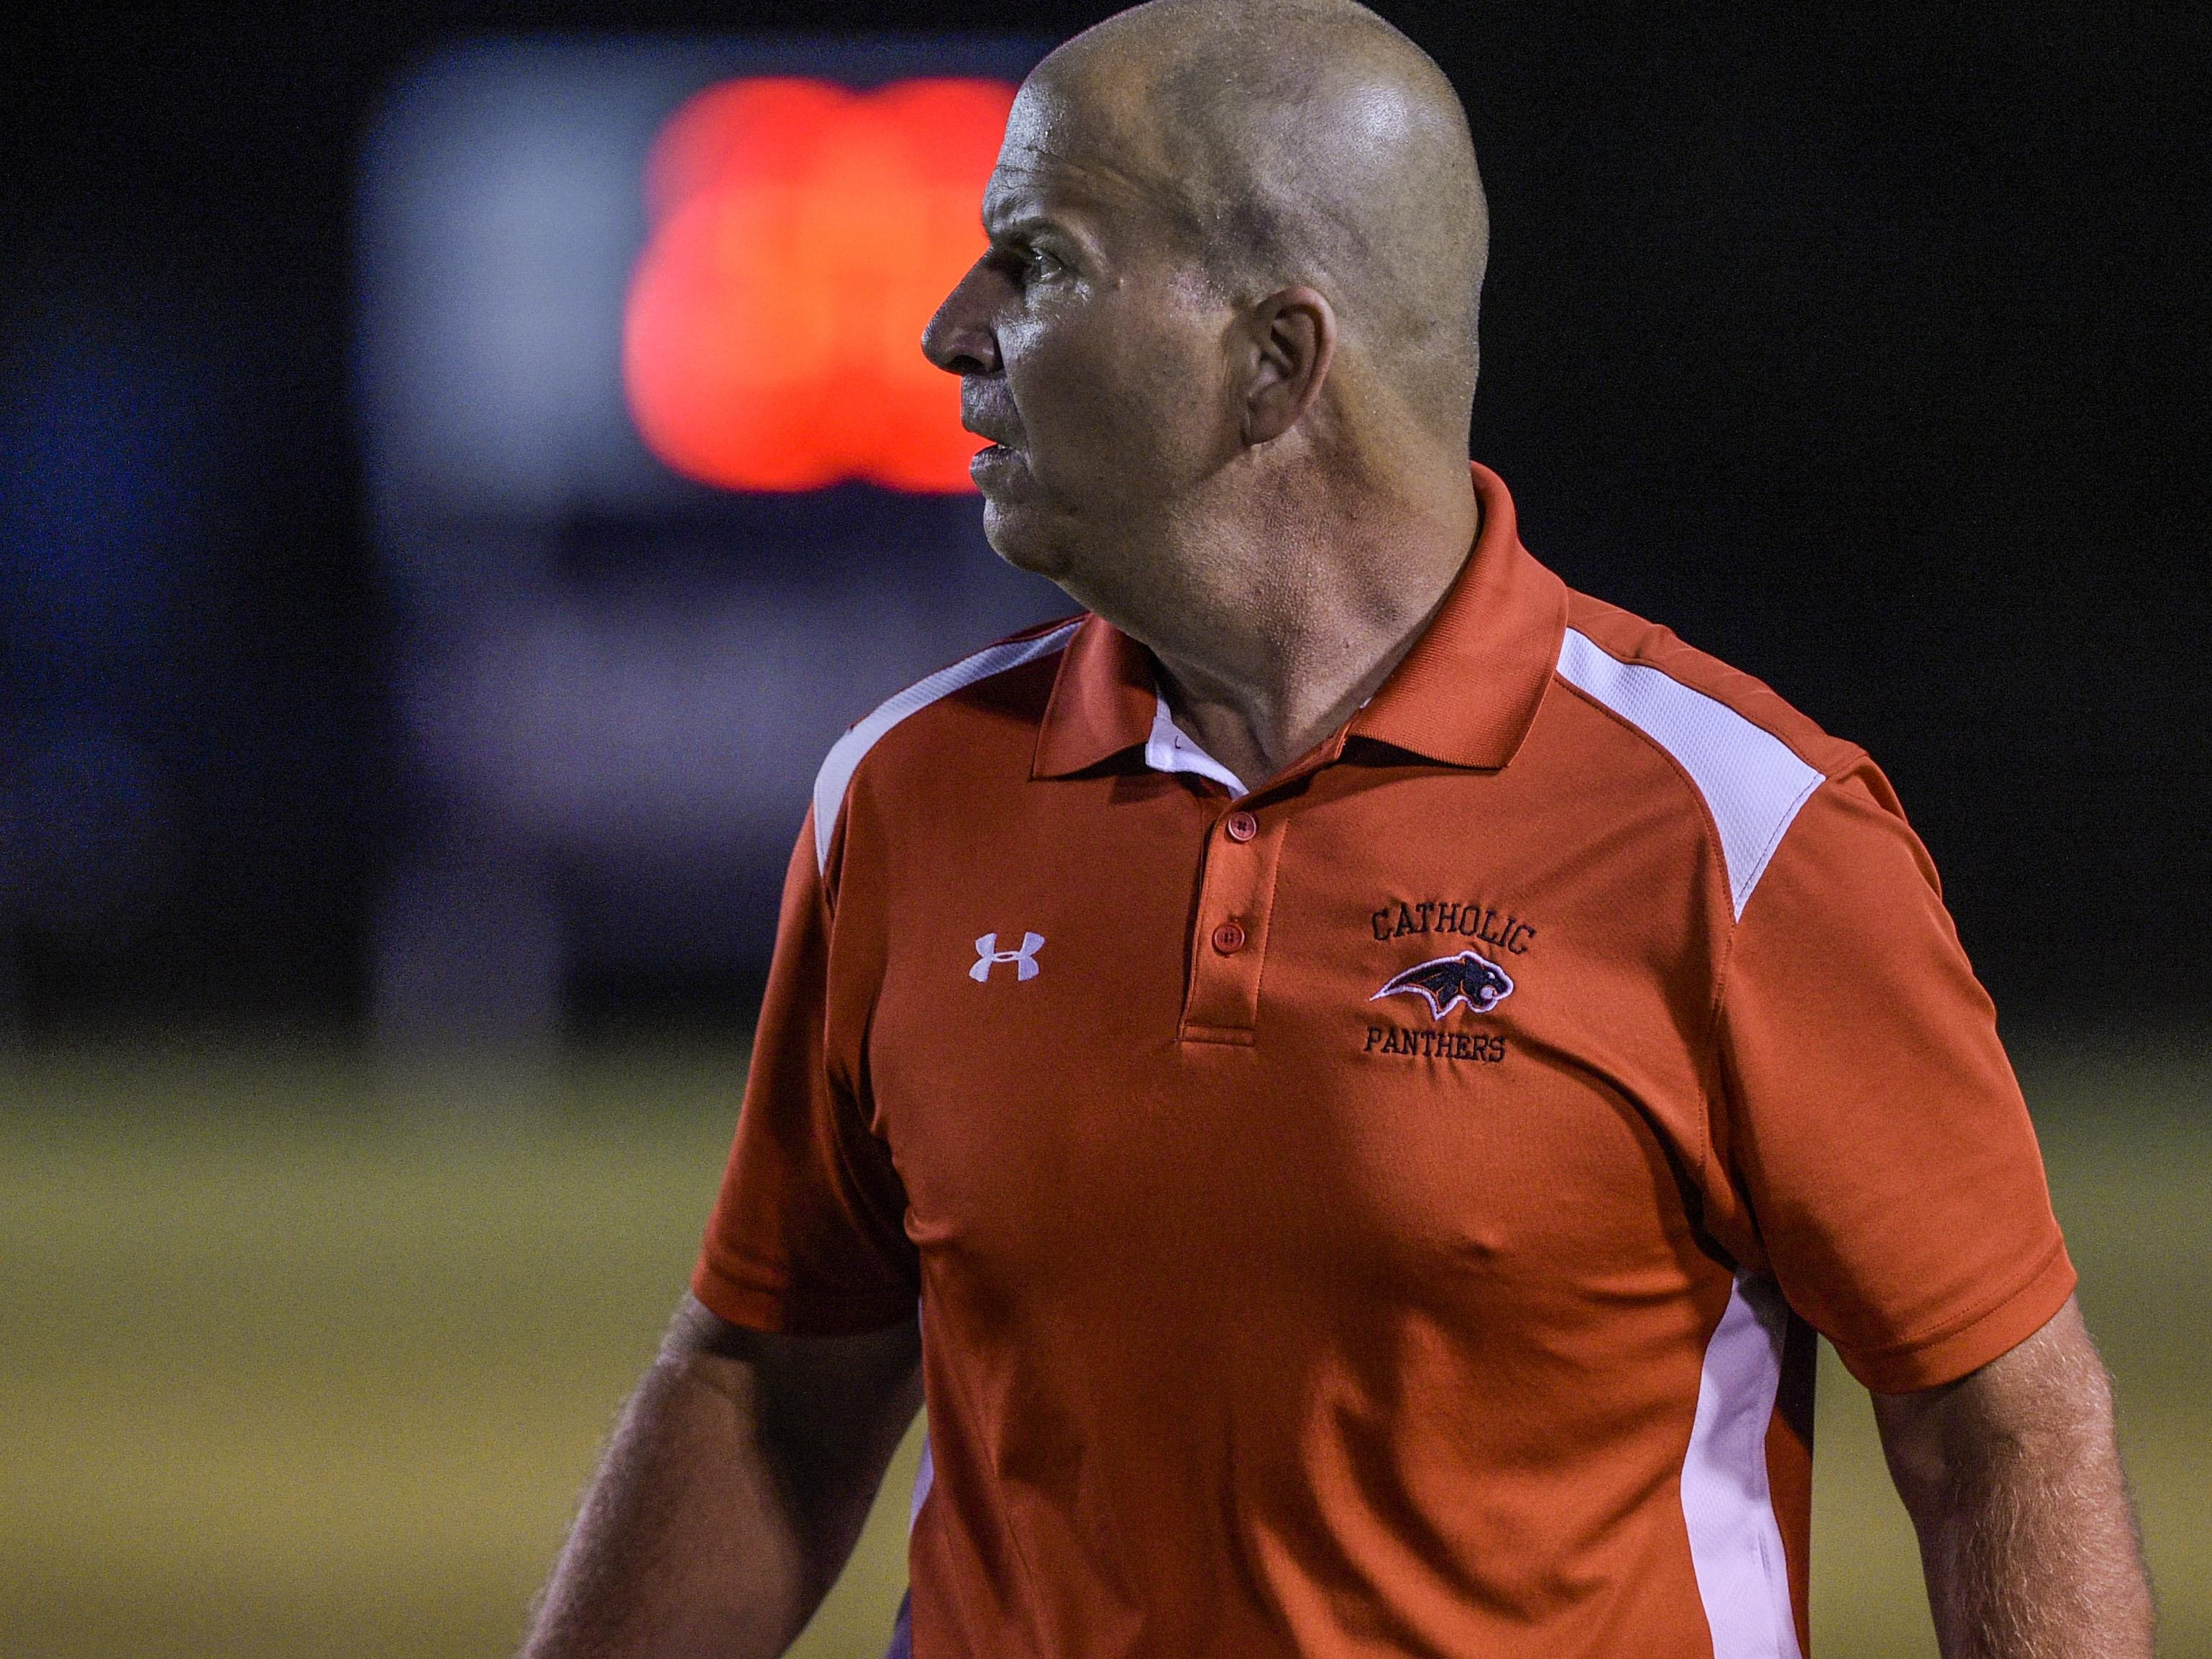 Catholic High head coach Brent Indest's Panthers rolled past Loreauville 41-14 on Thursday.